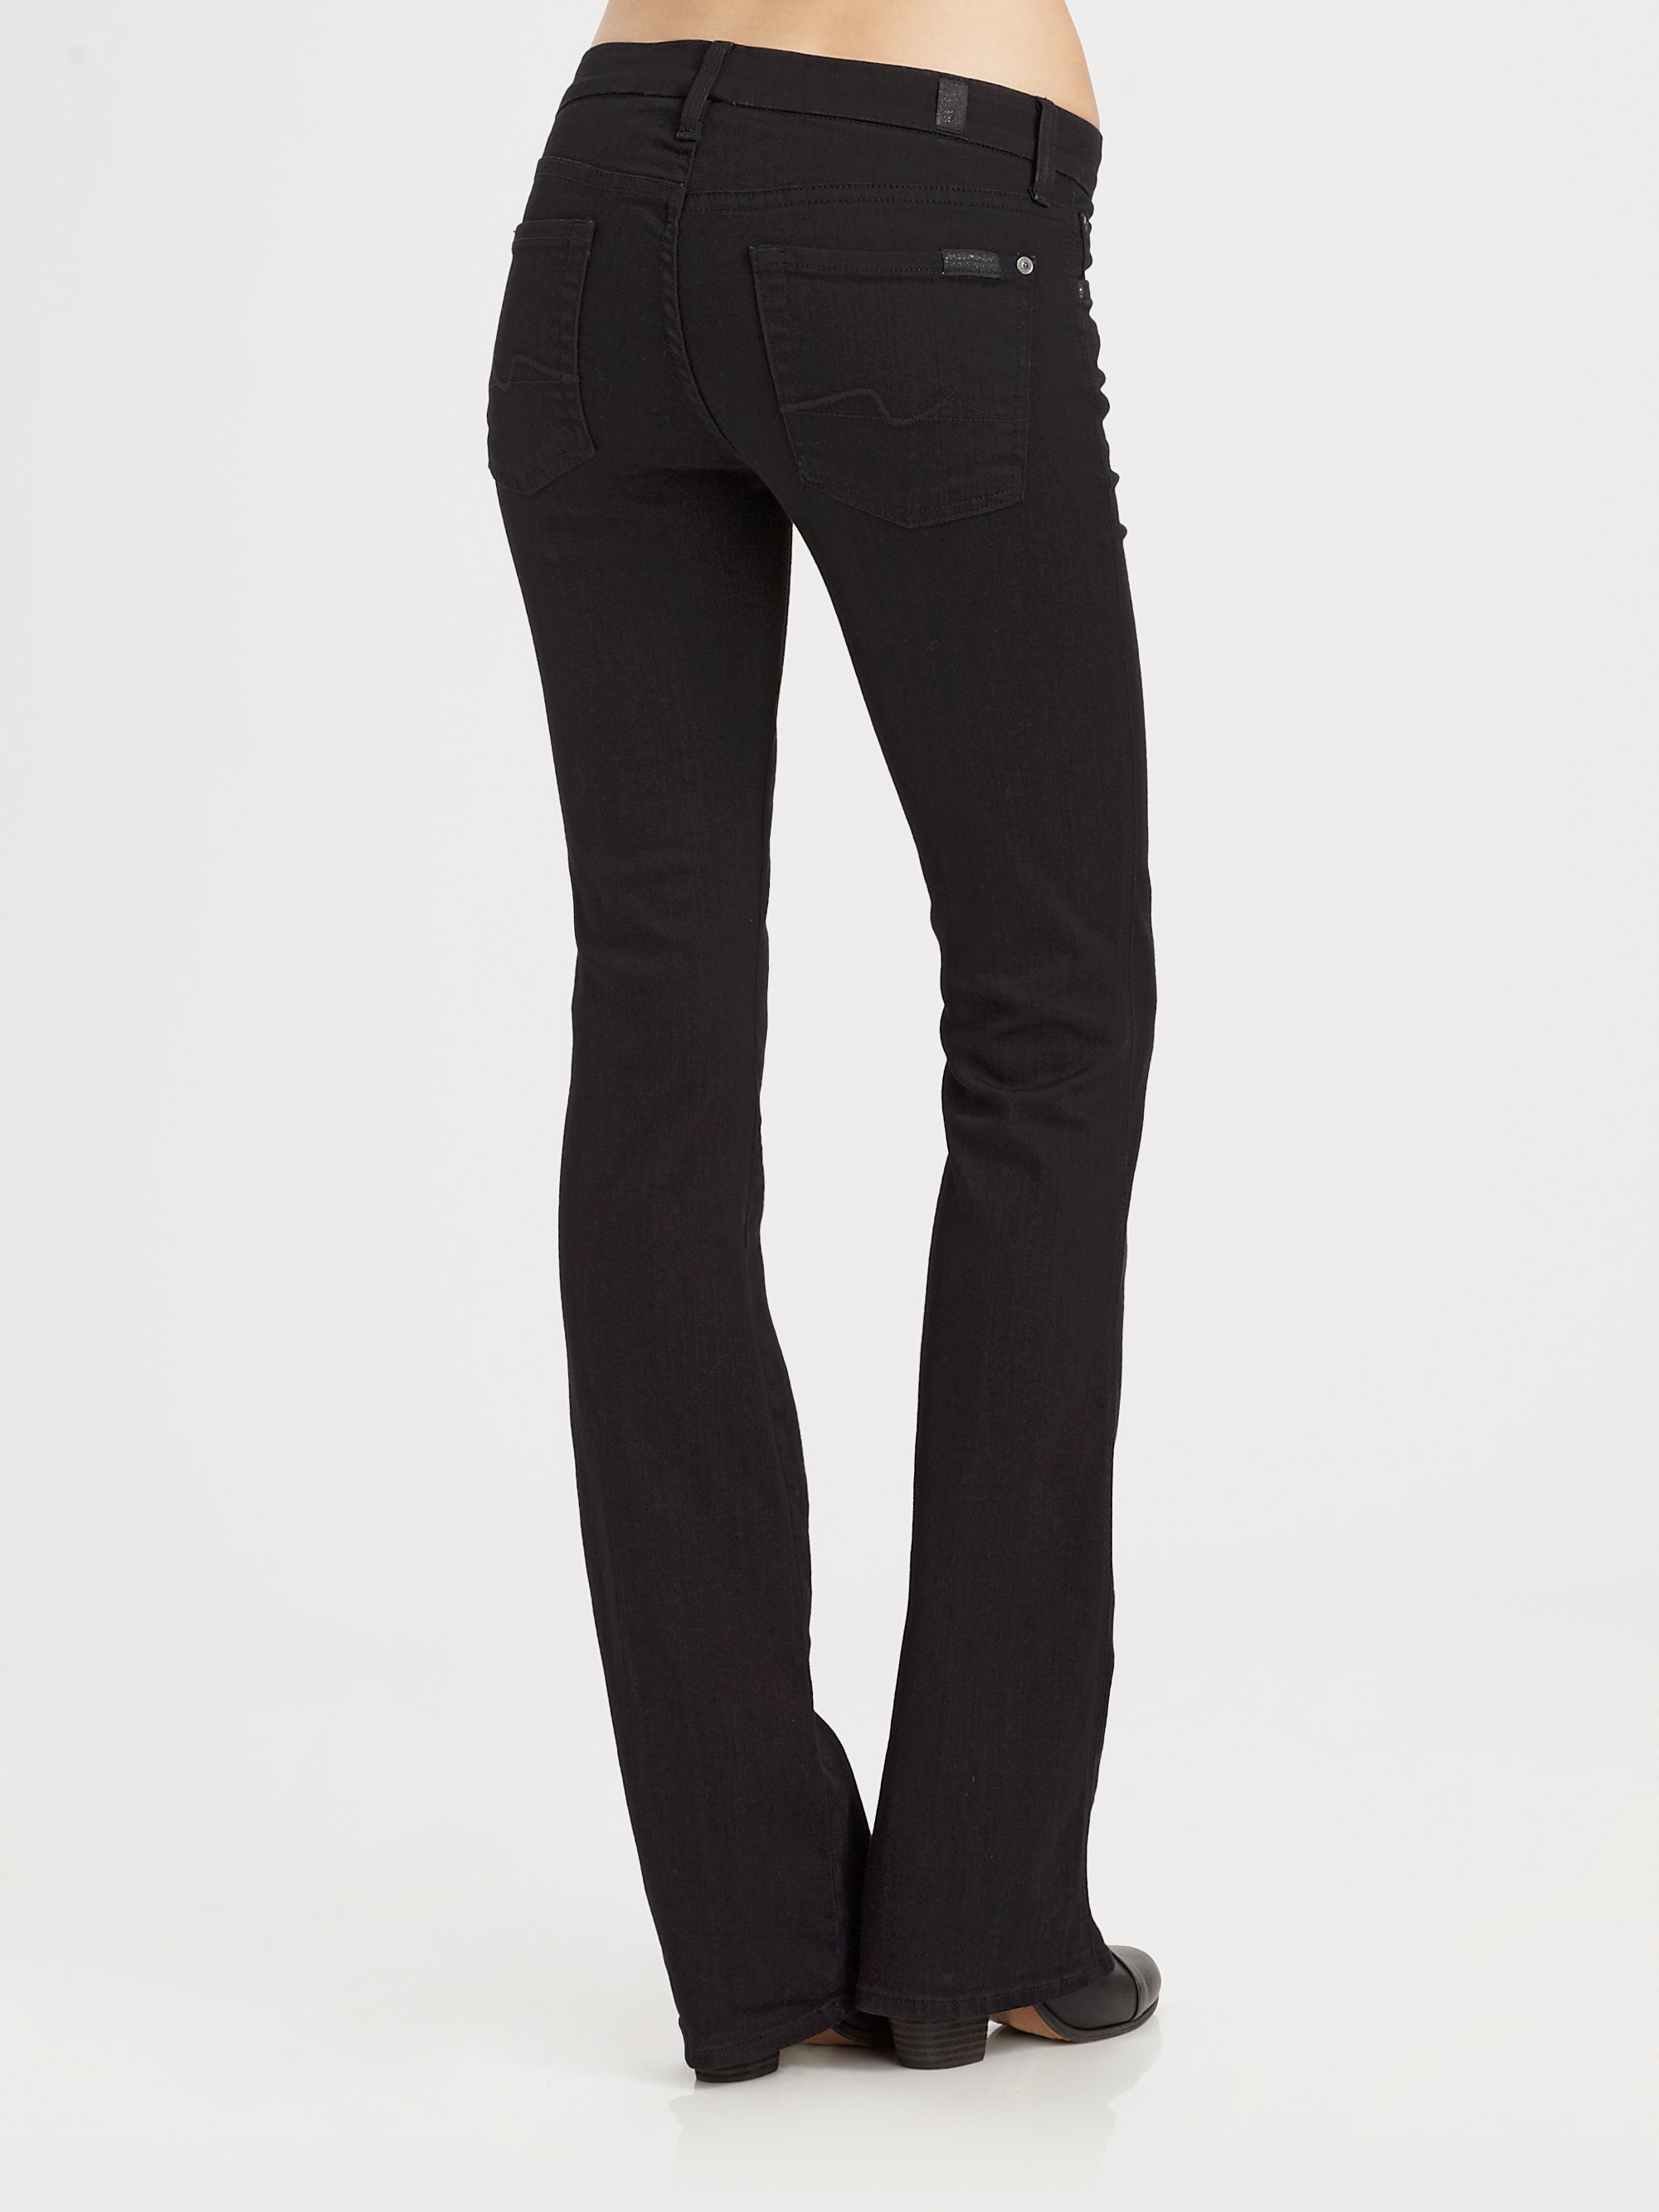 7 for all mankind Kimmie Bootcut Jeans in Black | Lyst